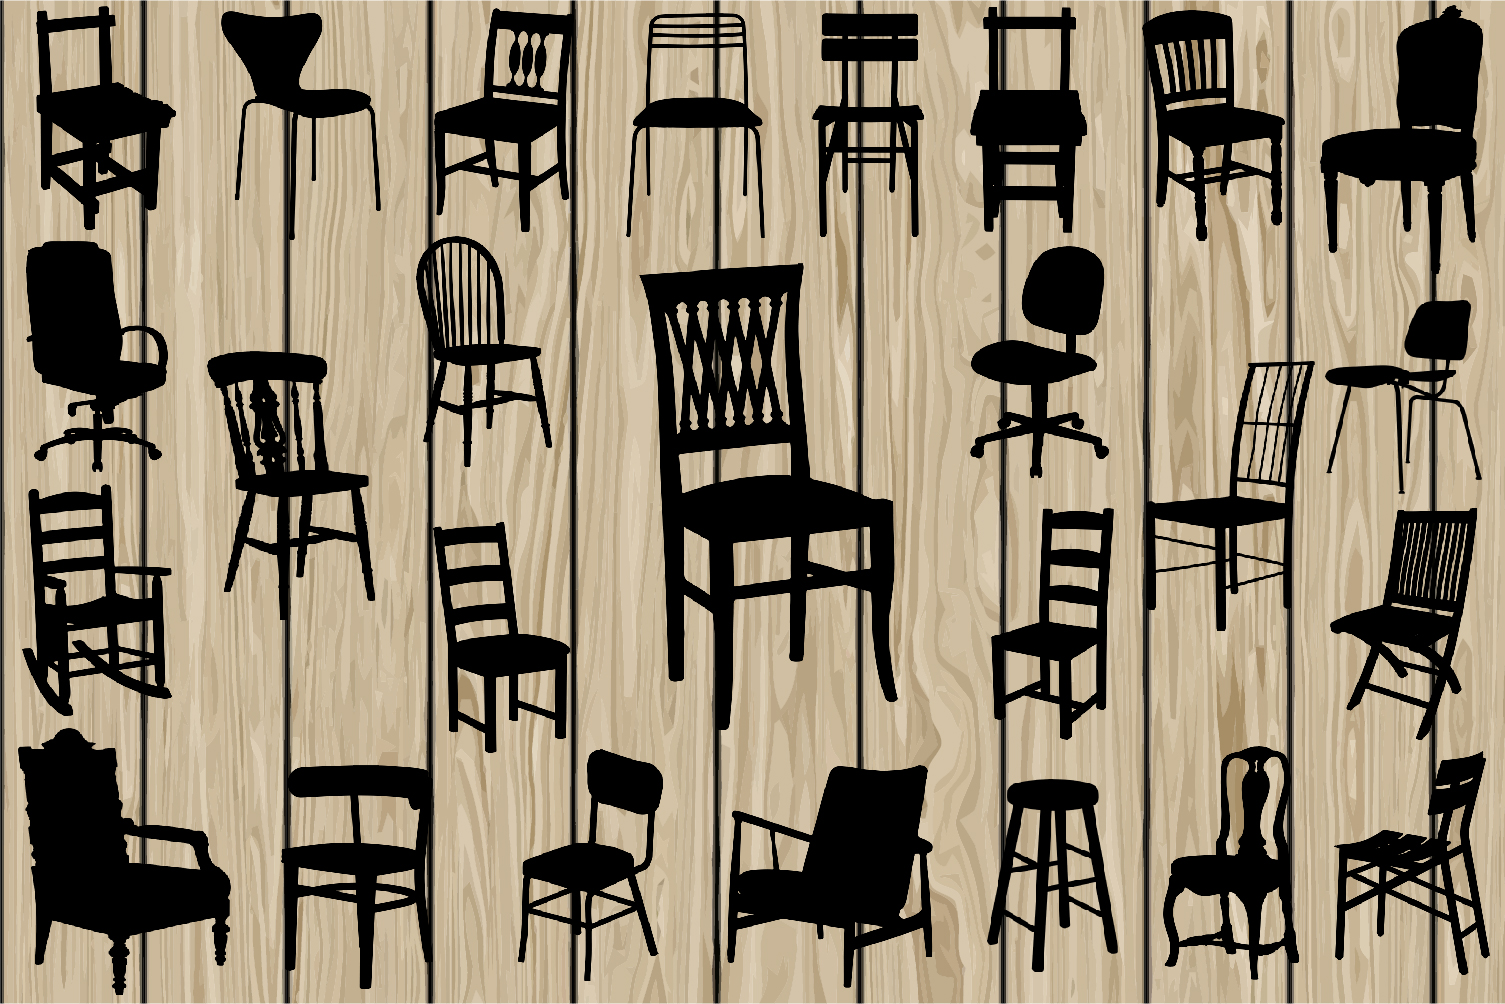 chair svg eps. Furniture clipart vector